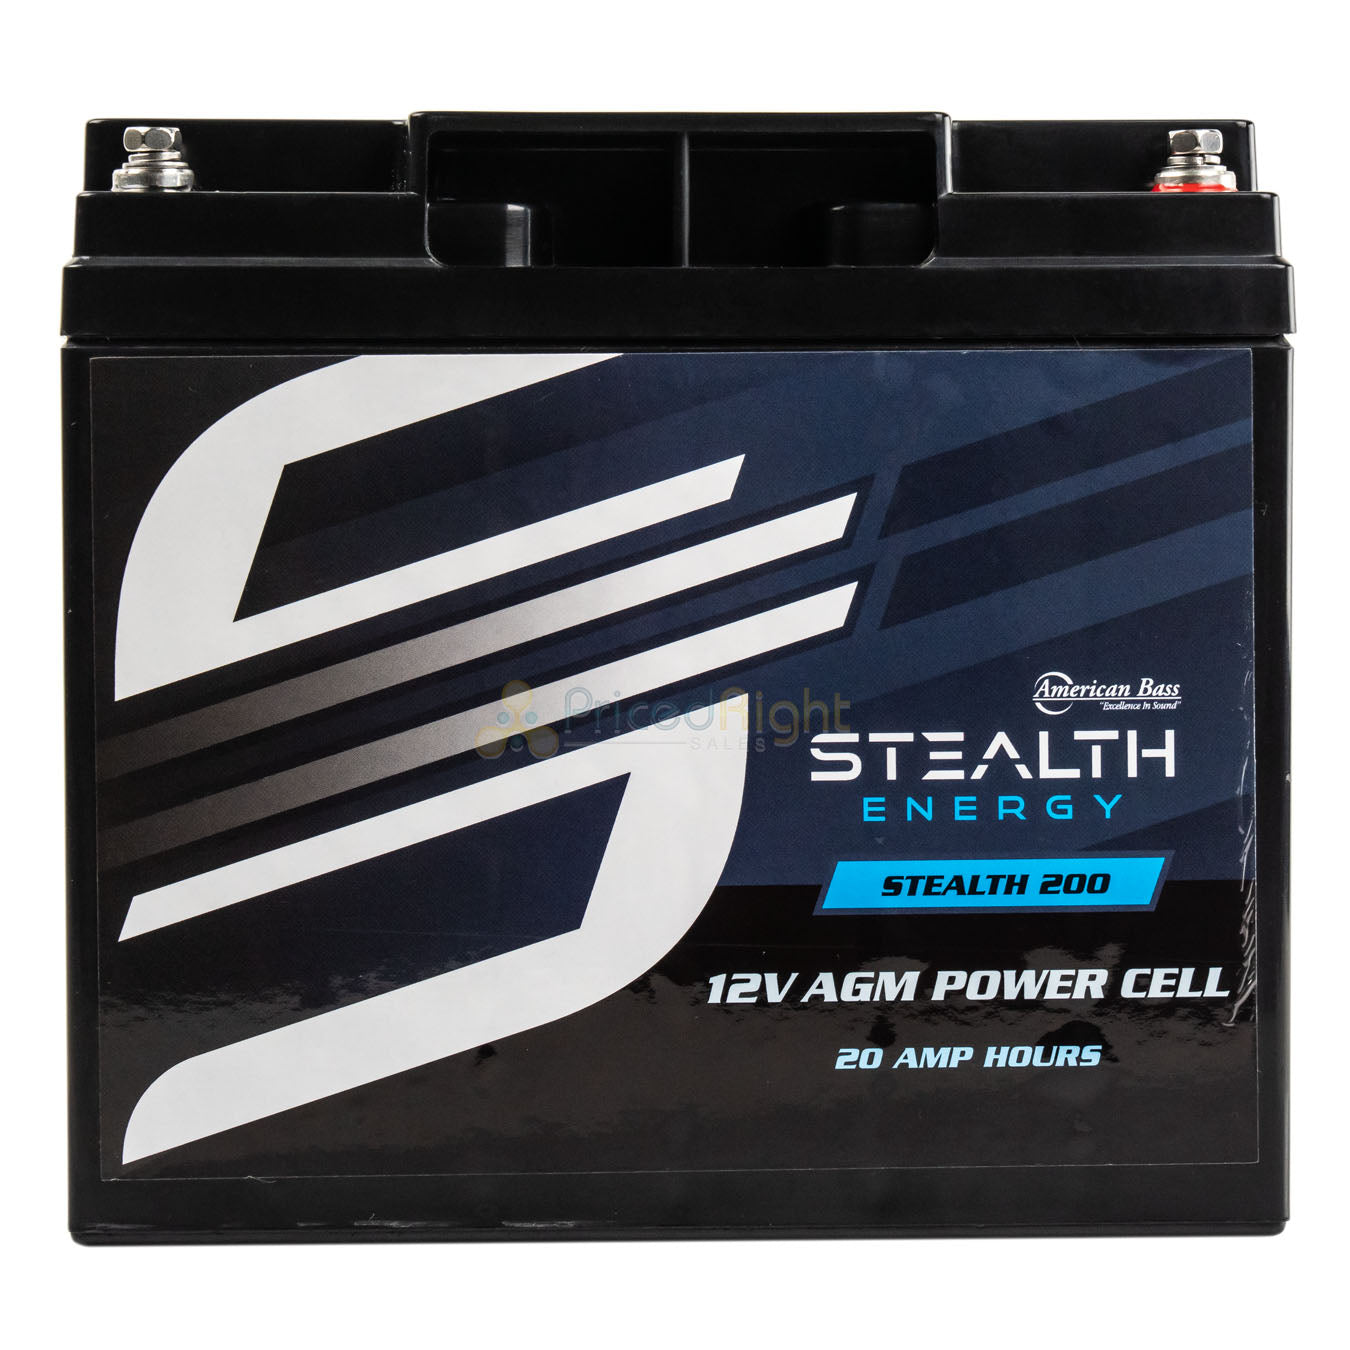 Car Audio Power Cell Battery Stealth 200 12V 20 Amp Hour Sealed American Bass